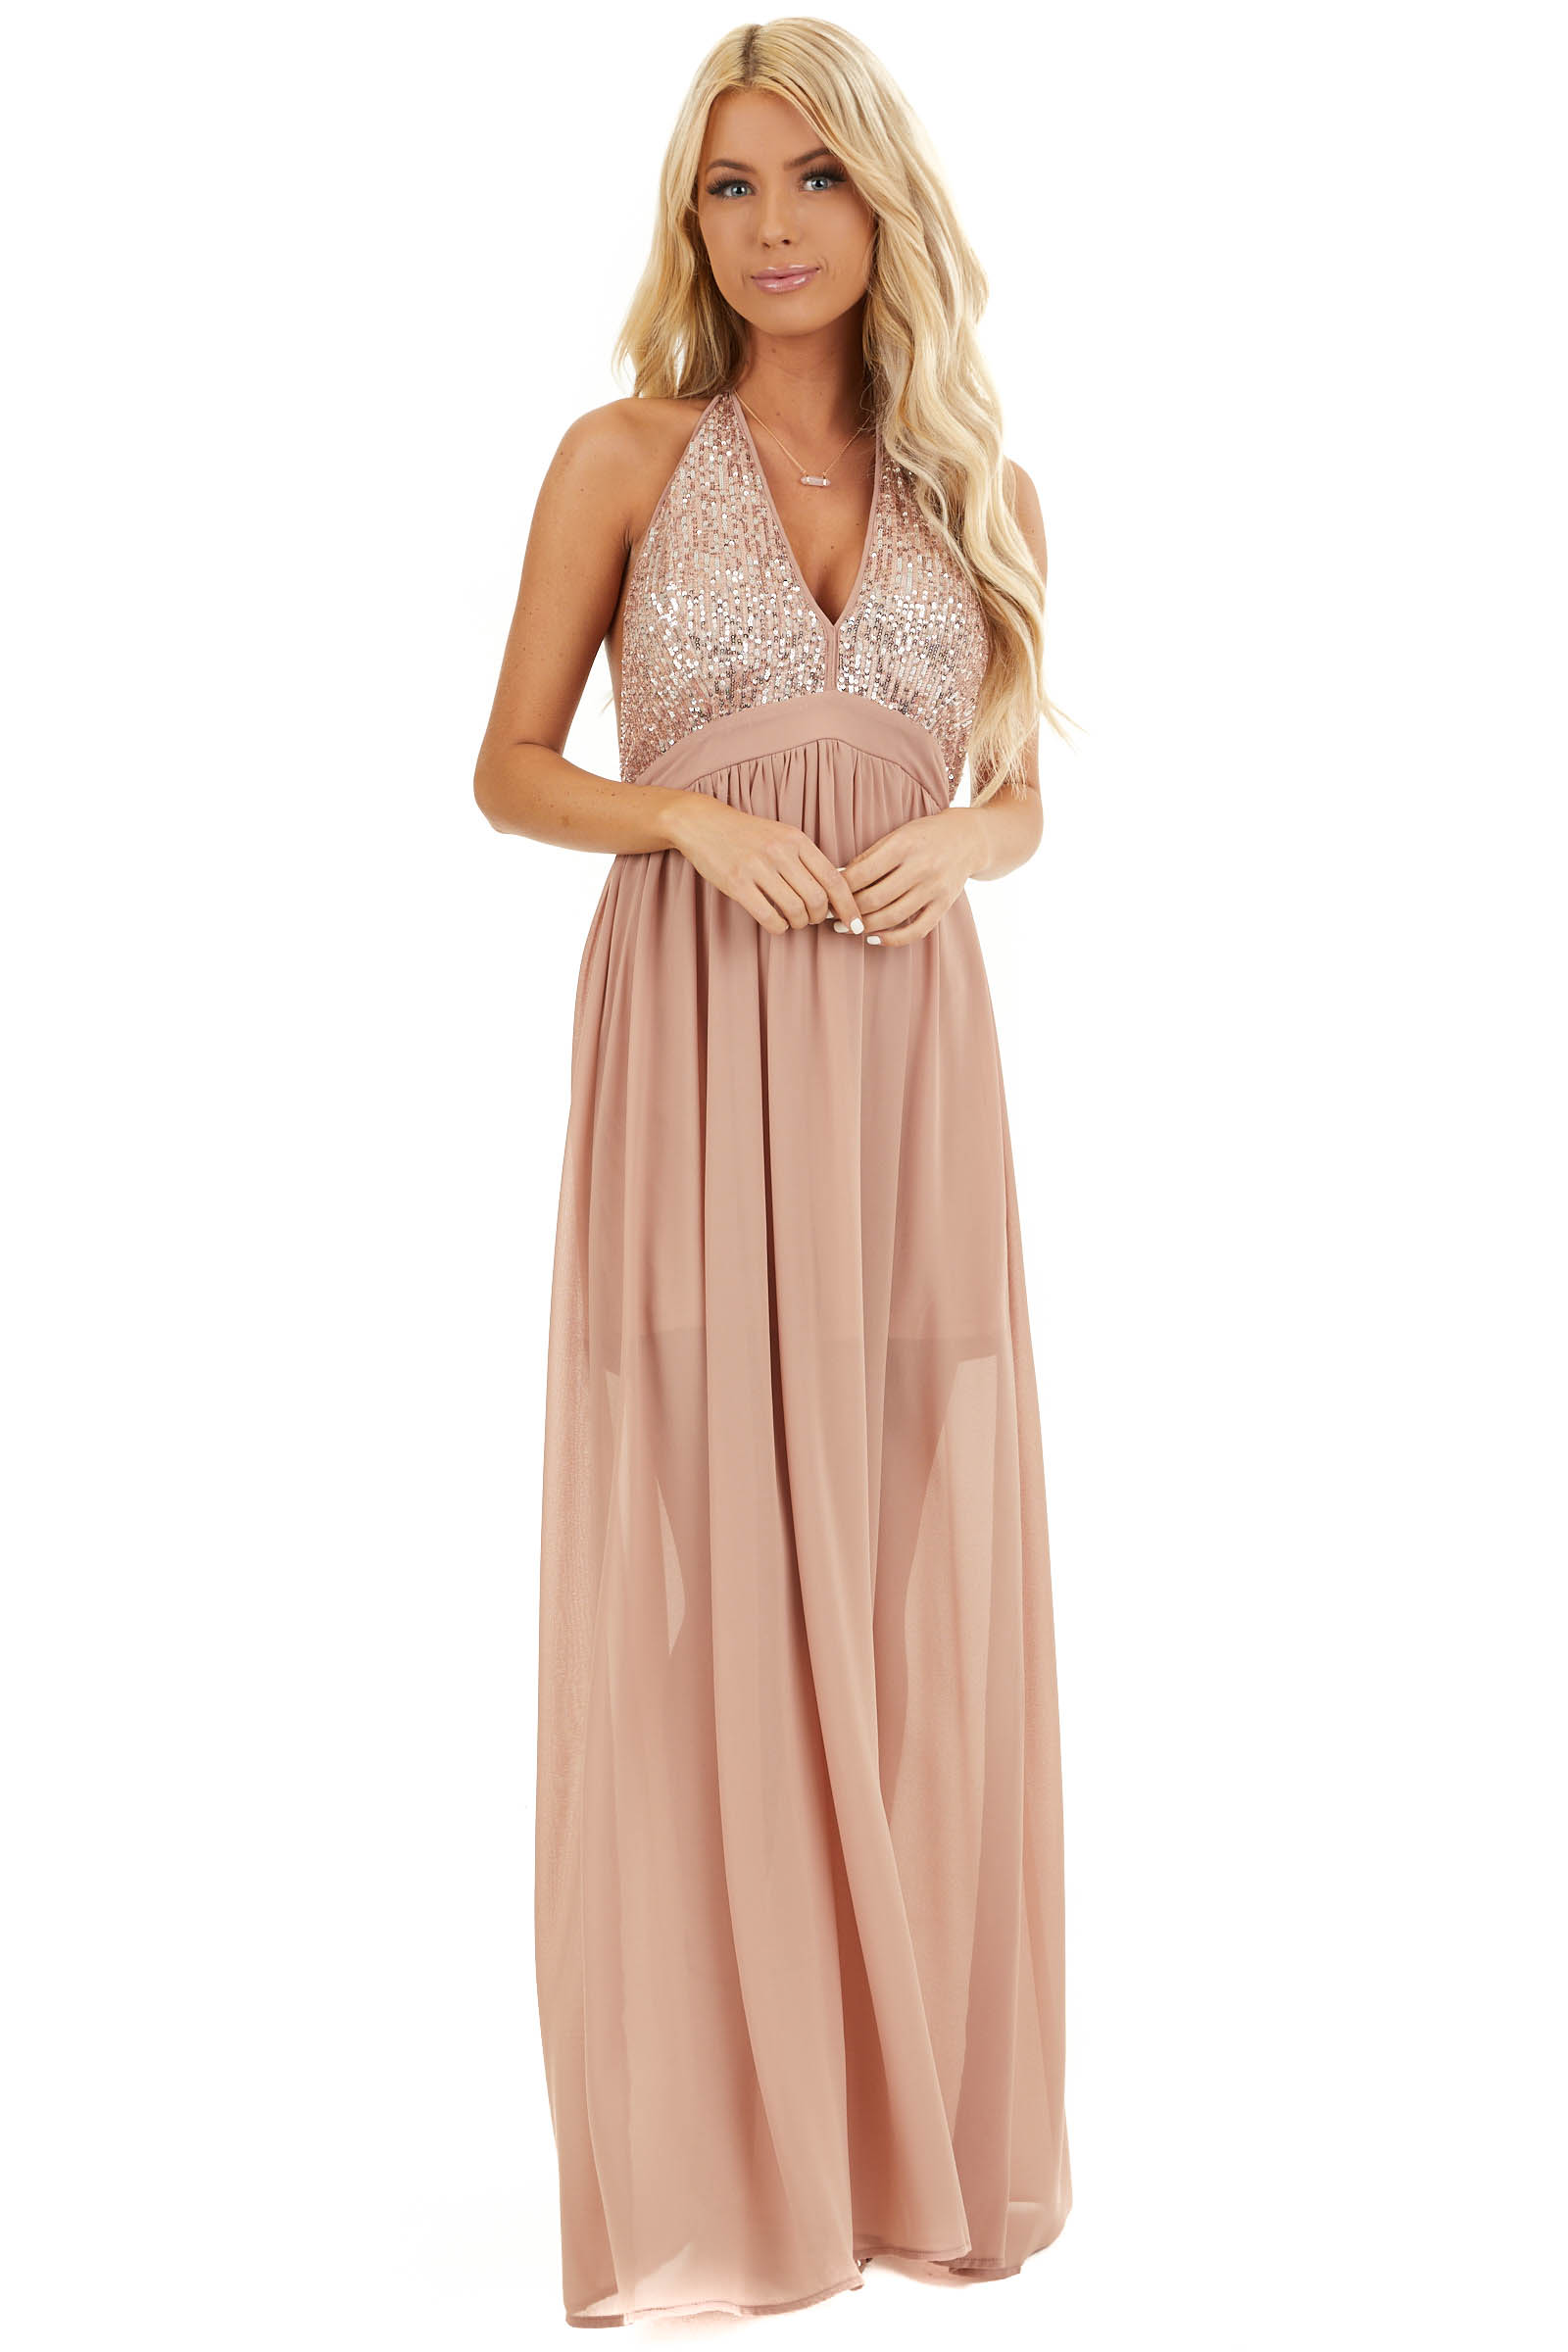 Blush Pink Sleeveless Halter Maxi Dress with Sequined Bodice front full body